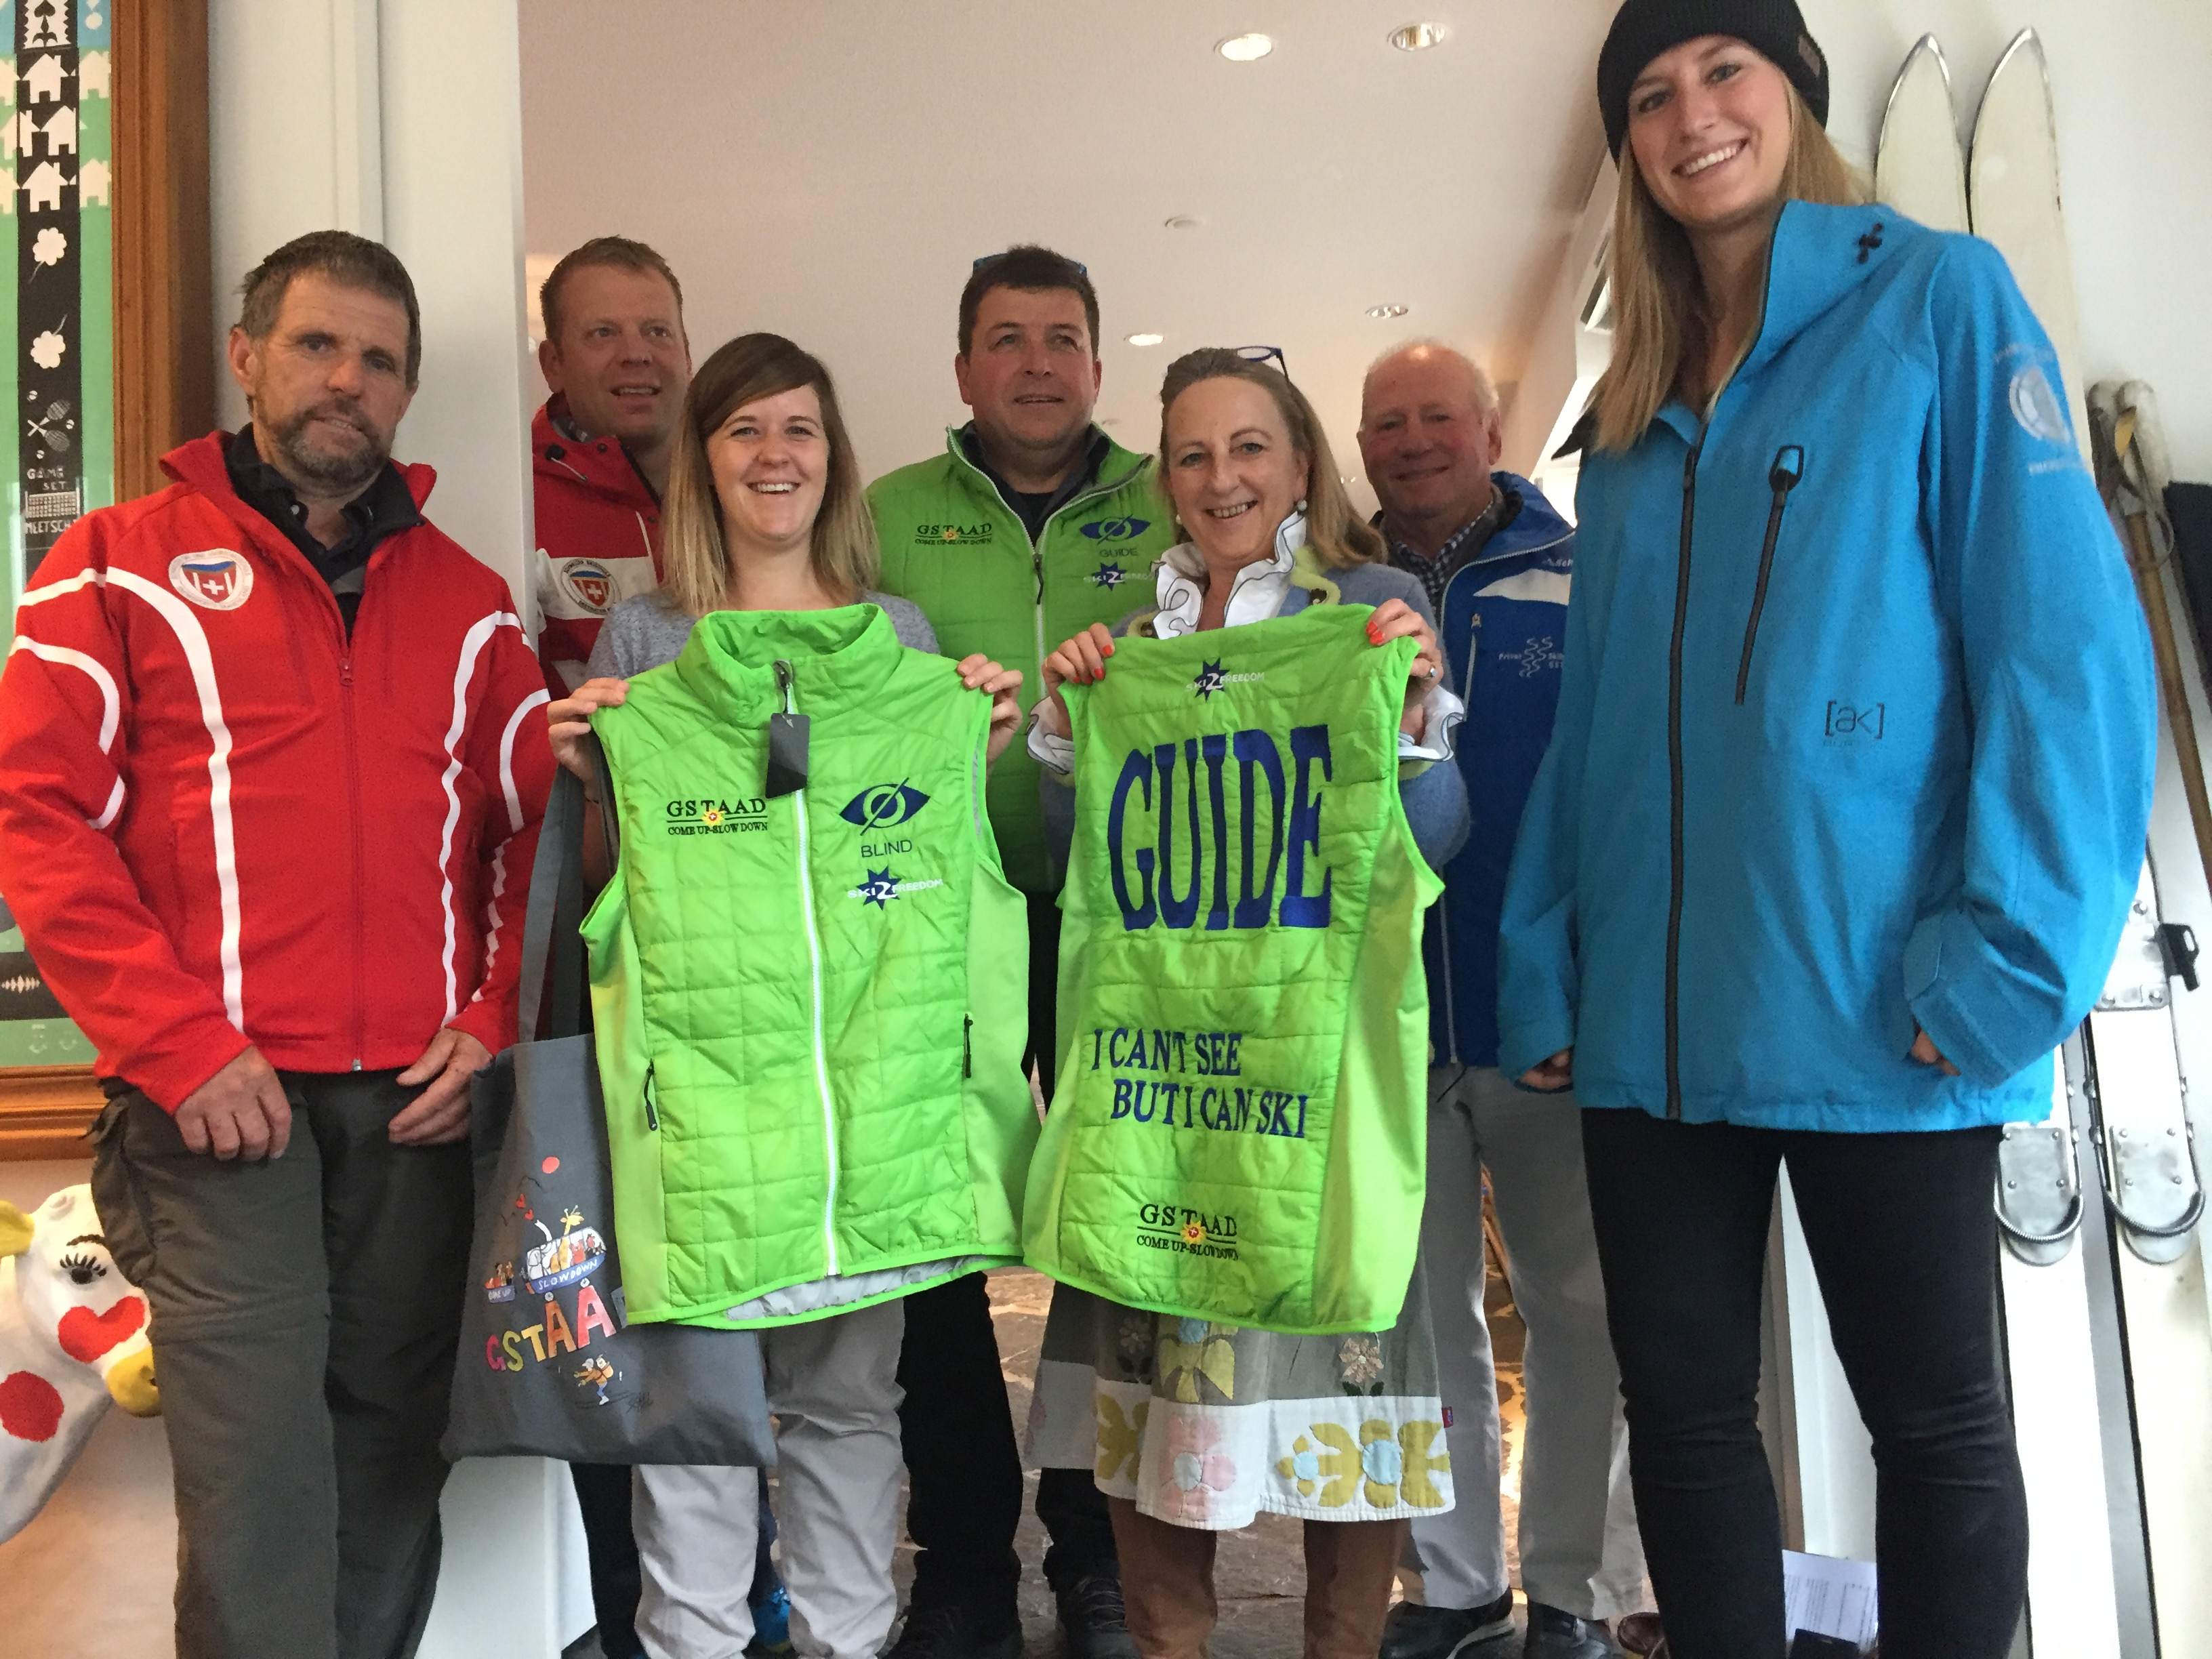 The blind skiers with Catherine Cosby of Ski 2 Freedom Foundation